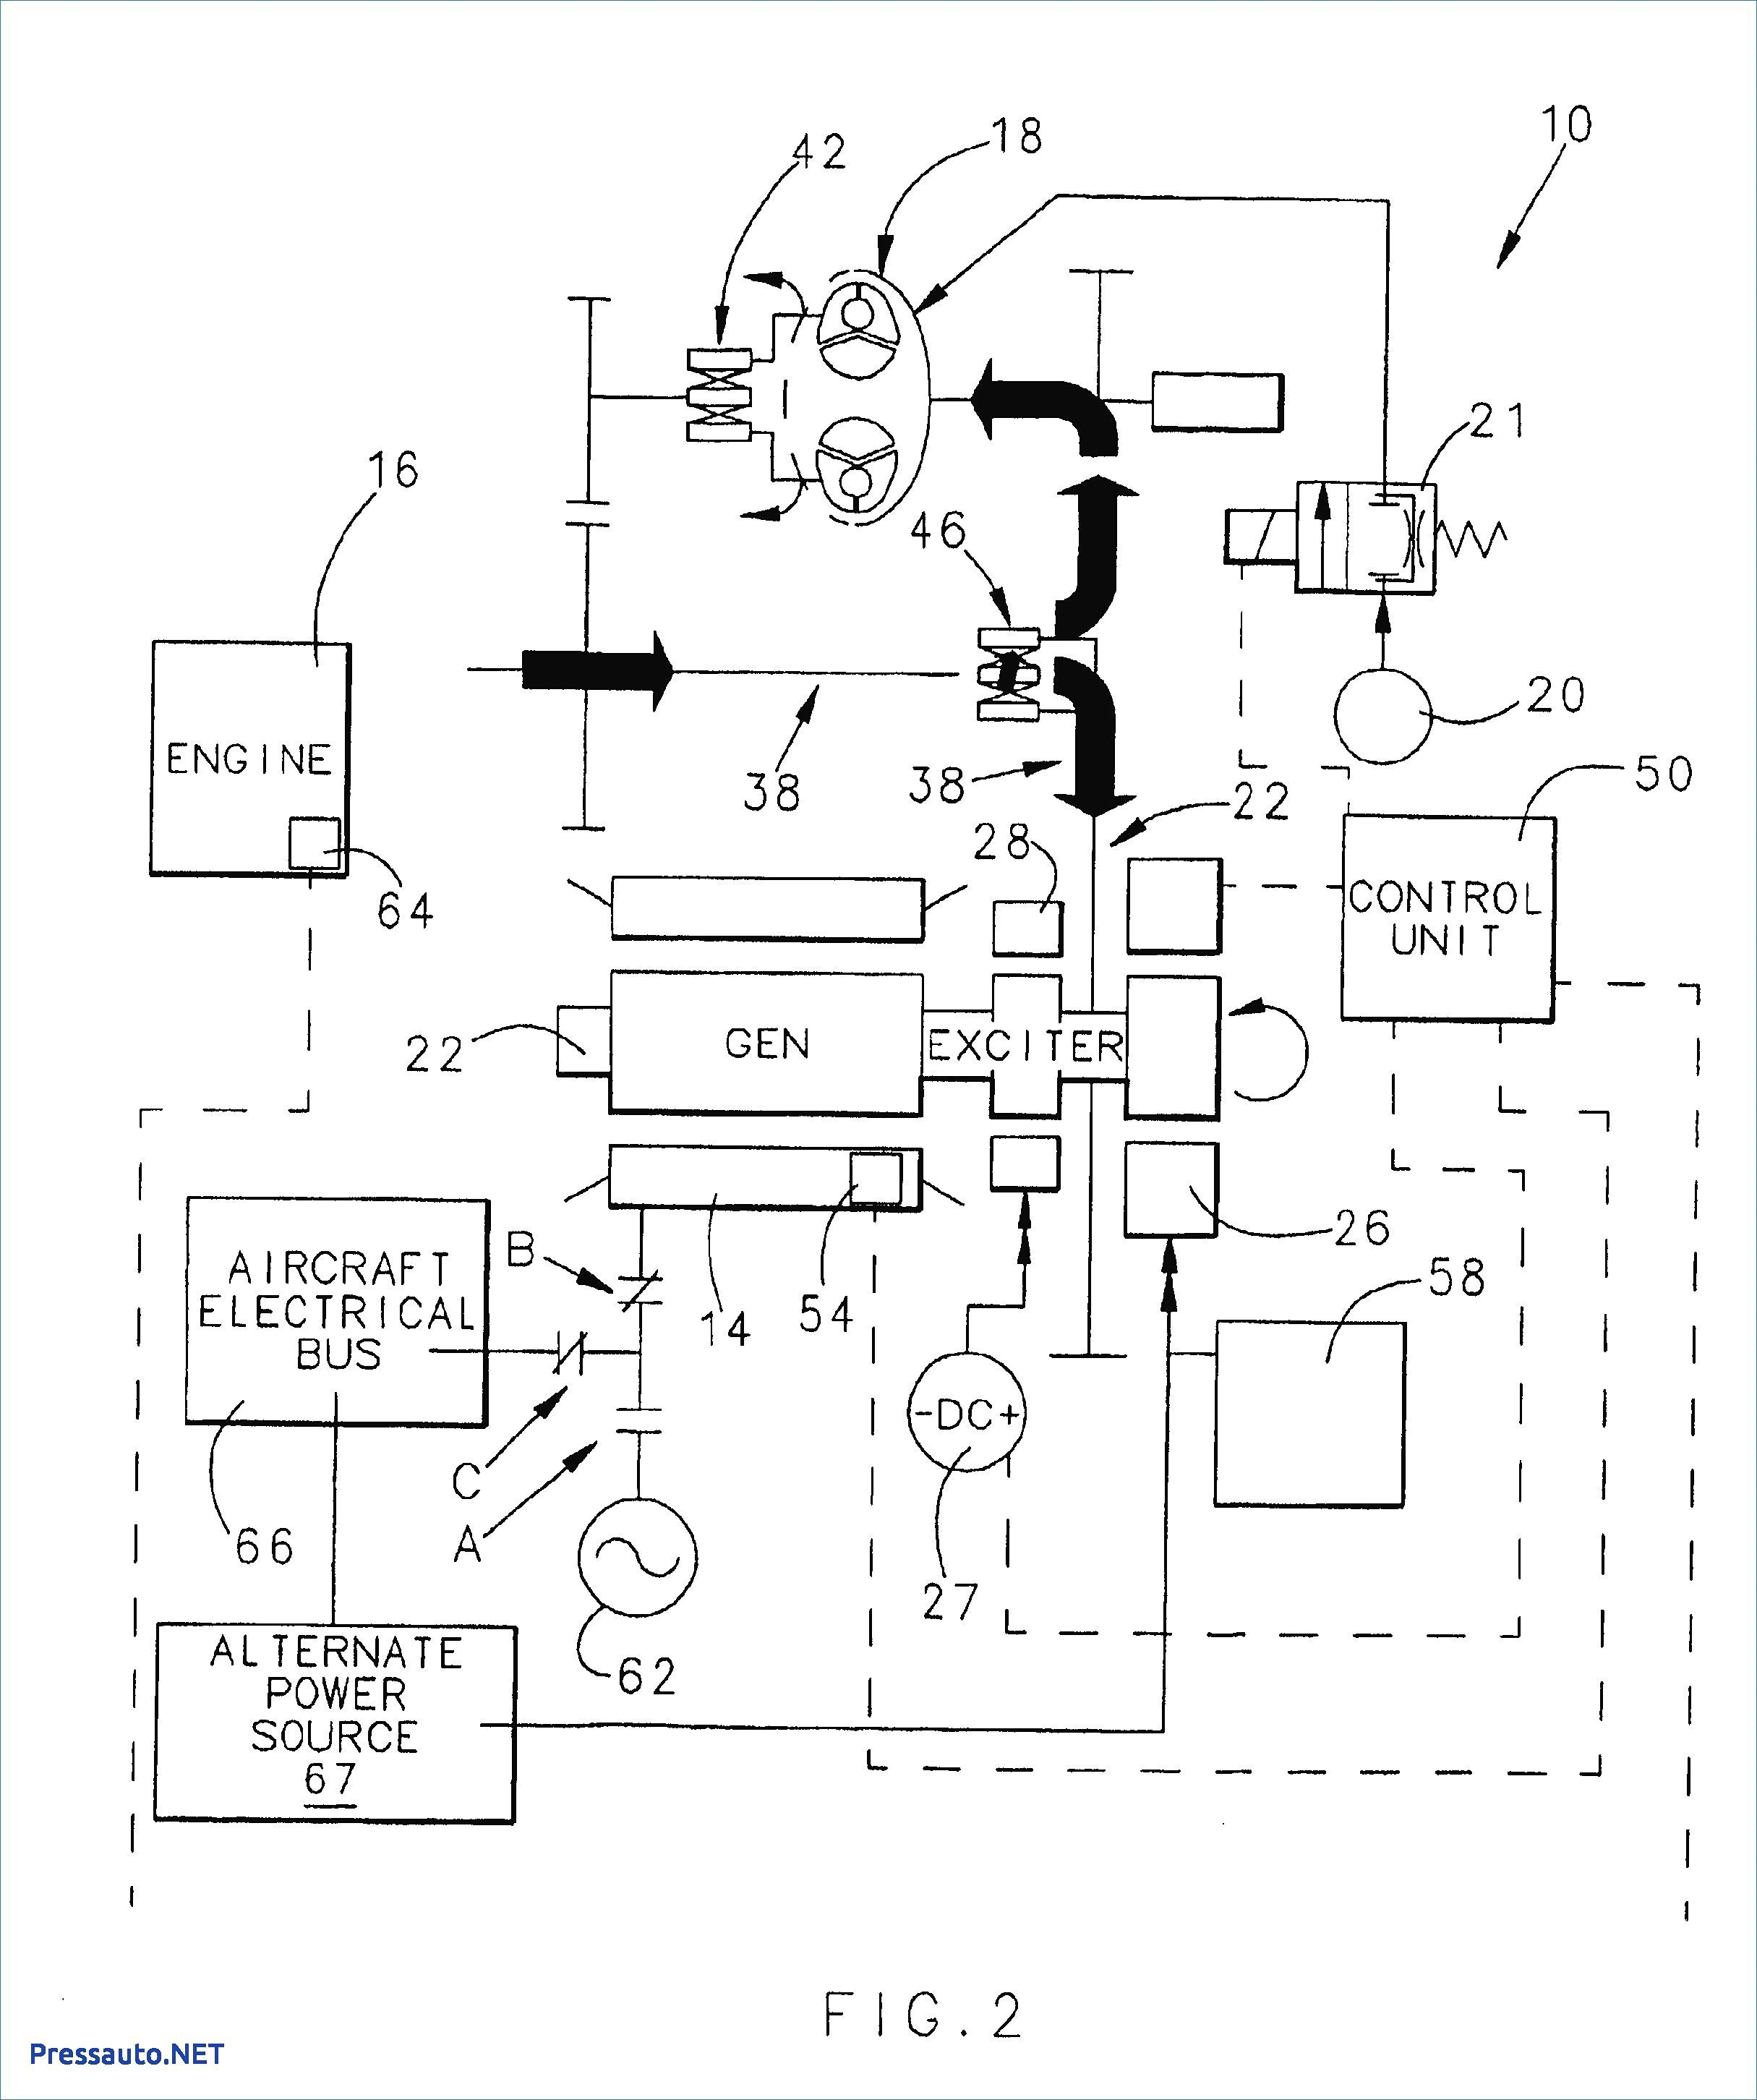 2002 3 0 Engine Diagram Wiring Libraries Chrysler 2000 Mitsubishi Montero Sport Simple Diagram2000 Data